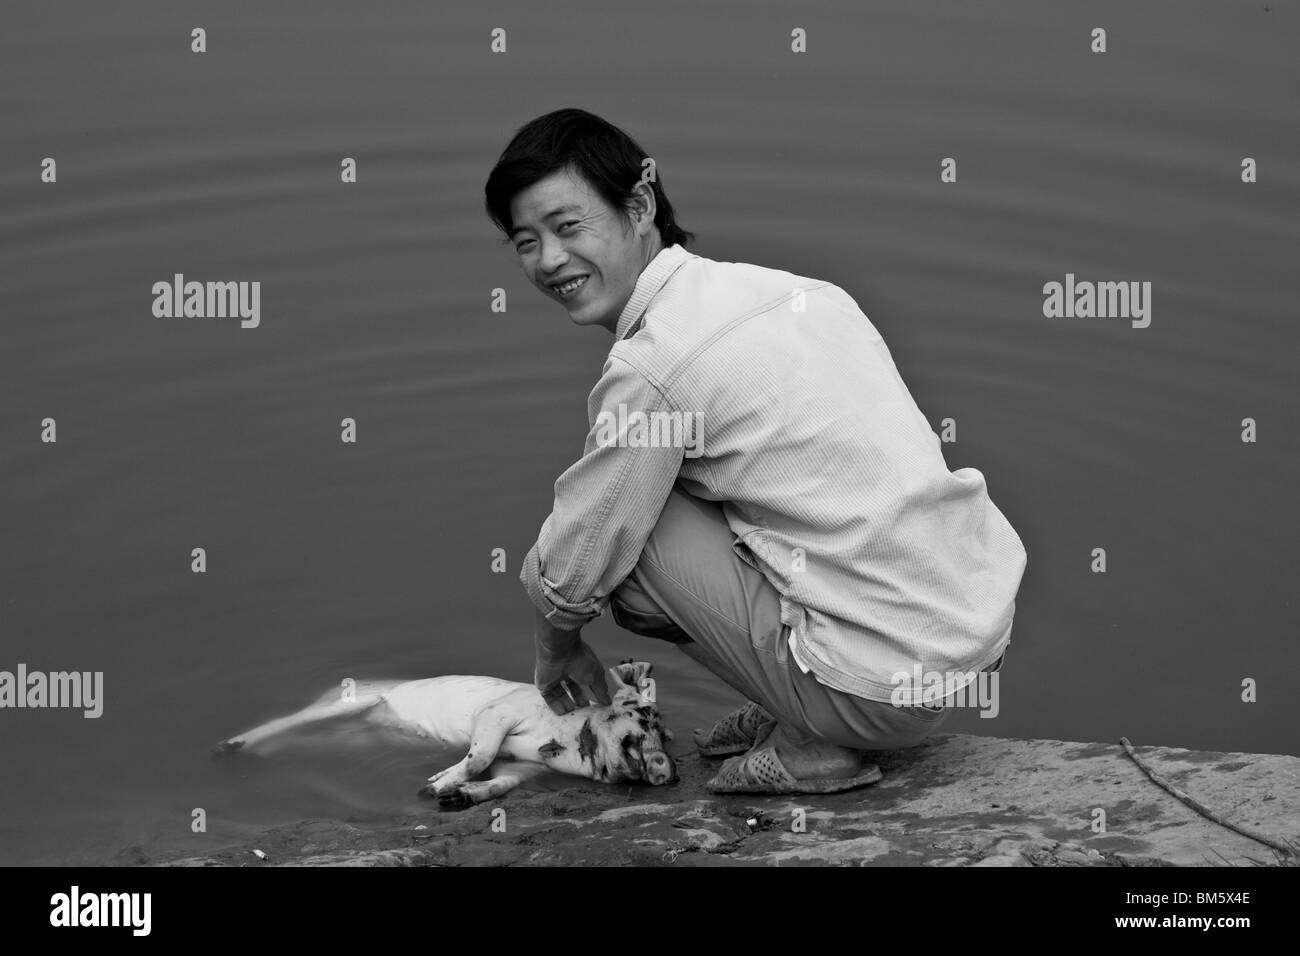 Man Cleaning Pig In The Lake,  Sapa, Vietnam - Stock Image